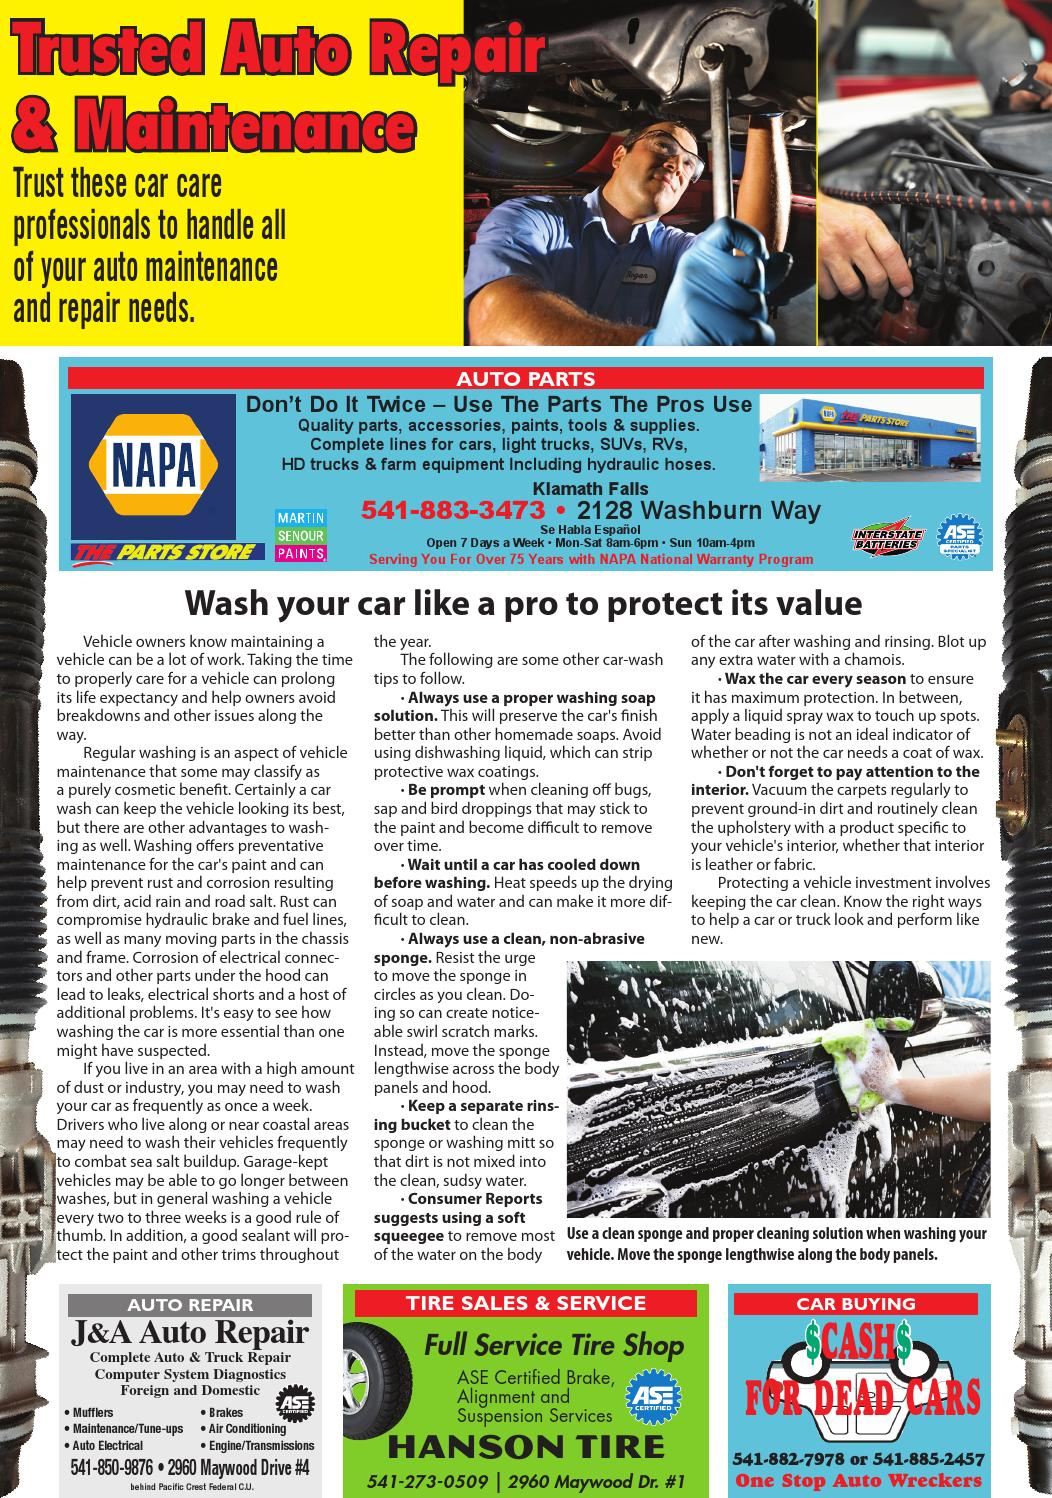 Automotive page 02-10-16 by Herald and News - issuu